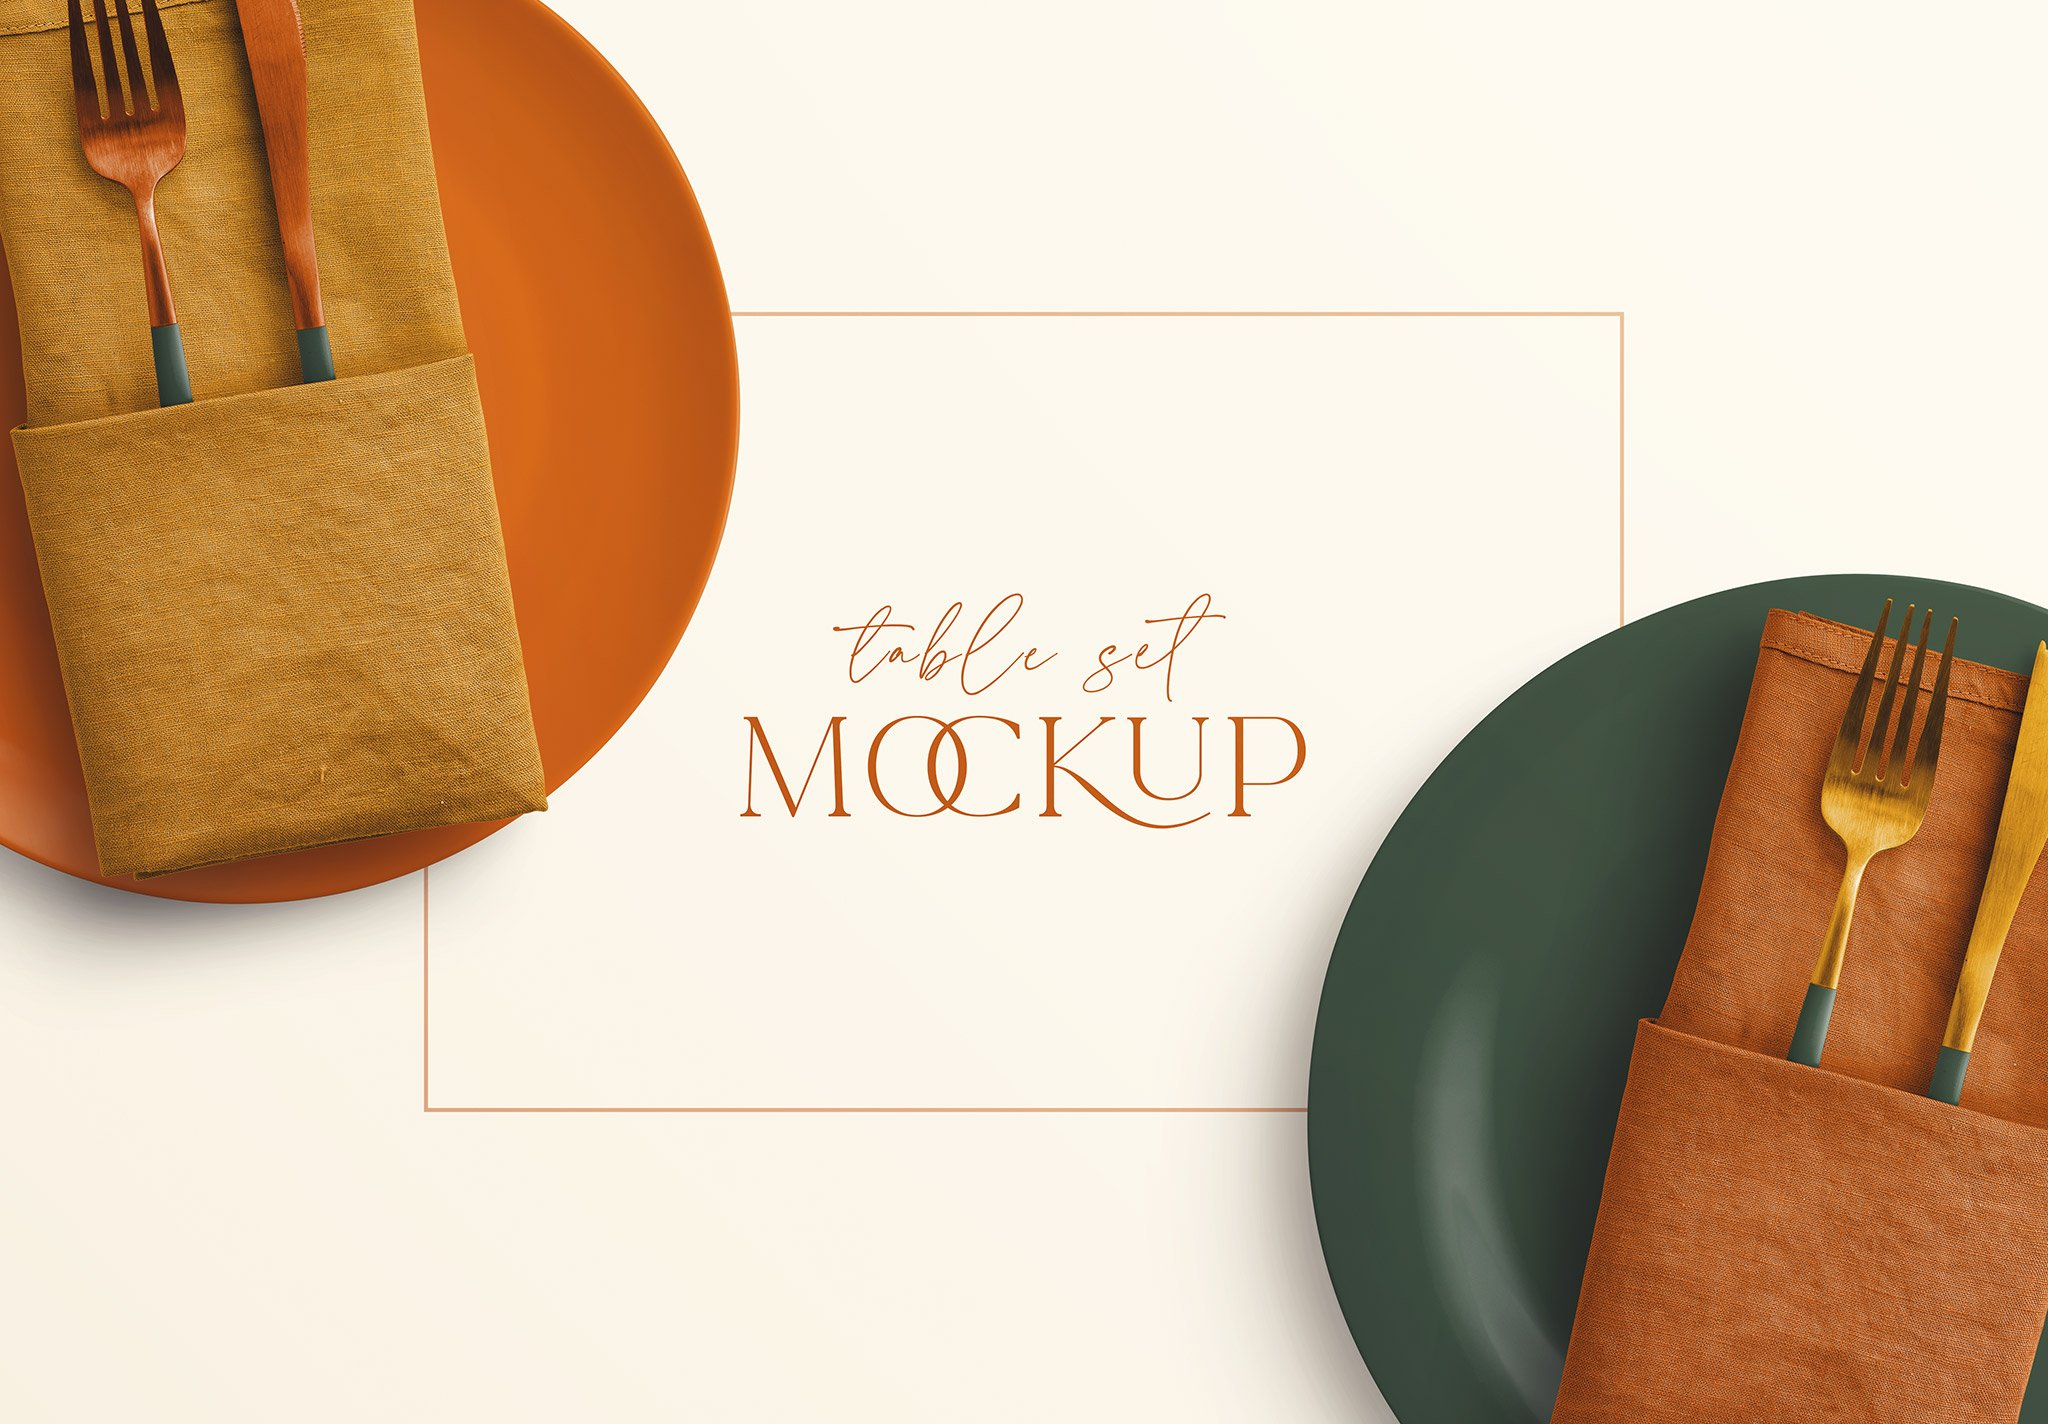 table set plate mockup and cutlery image03